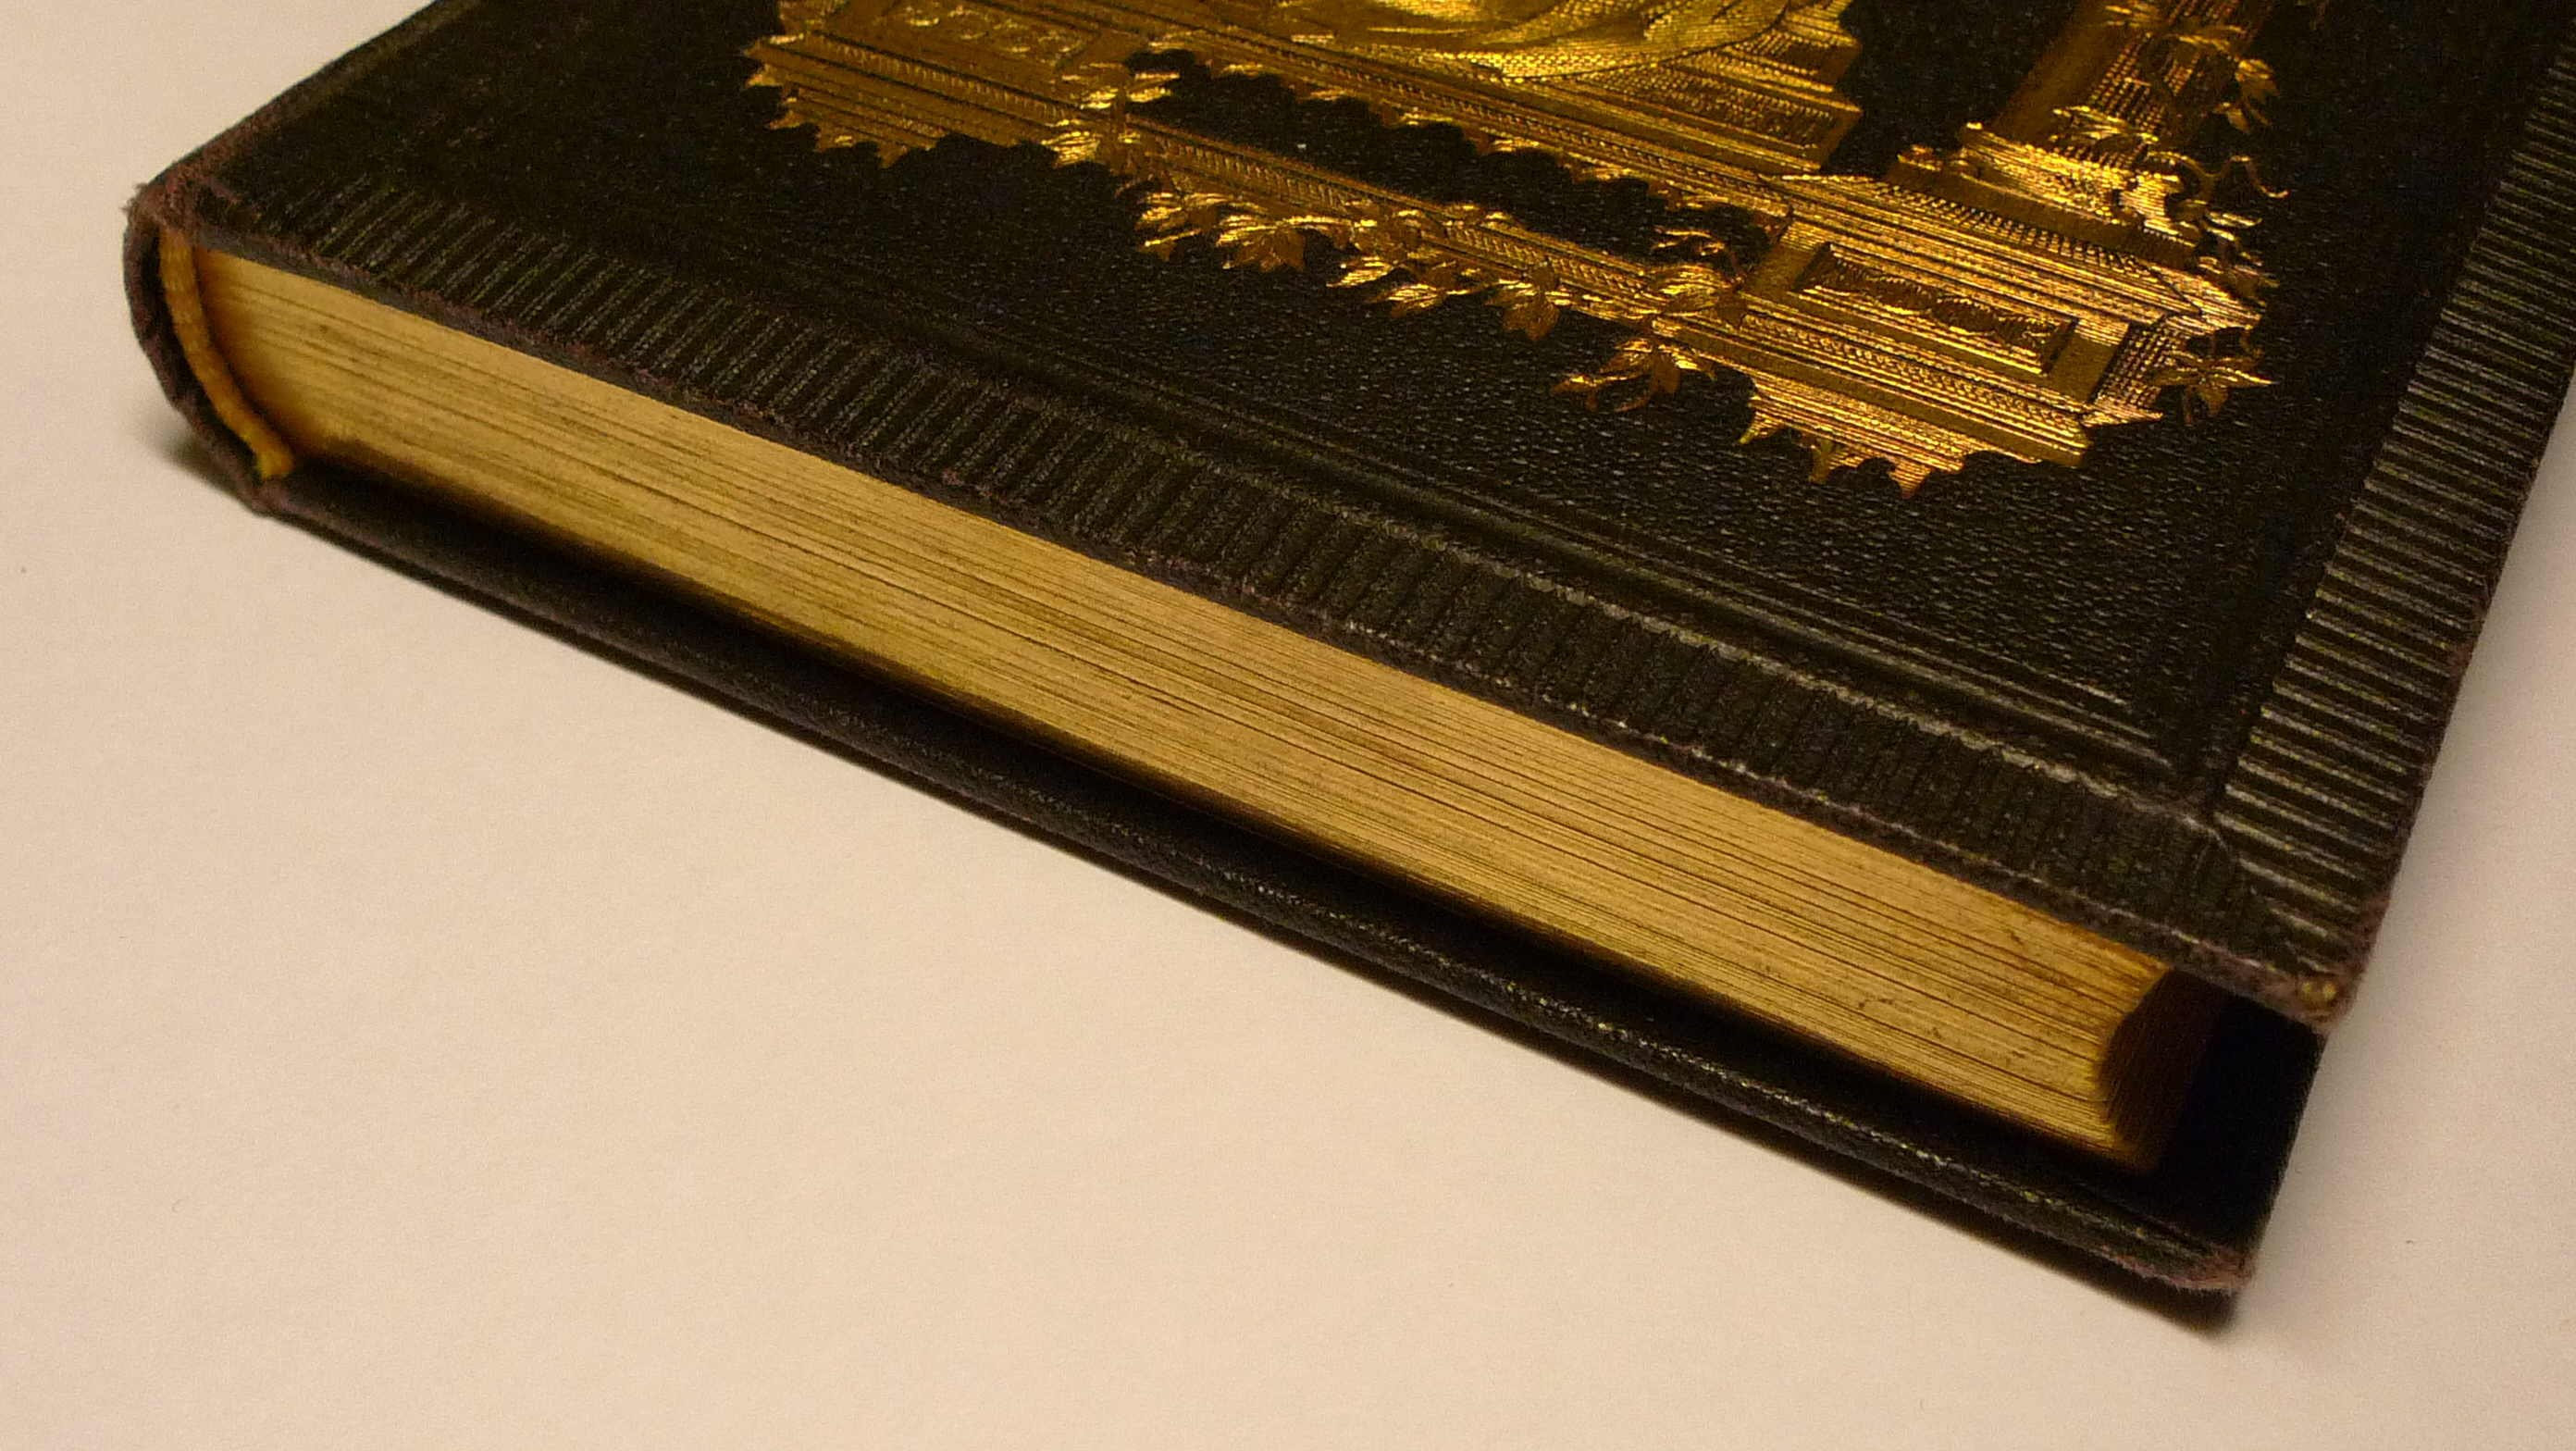 gilded book